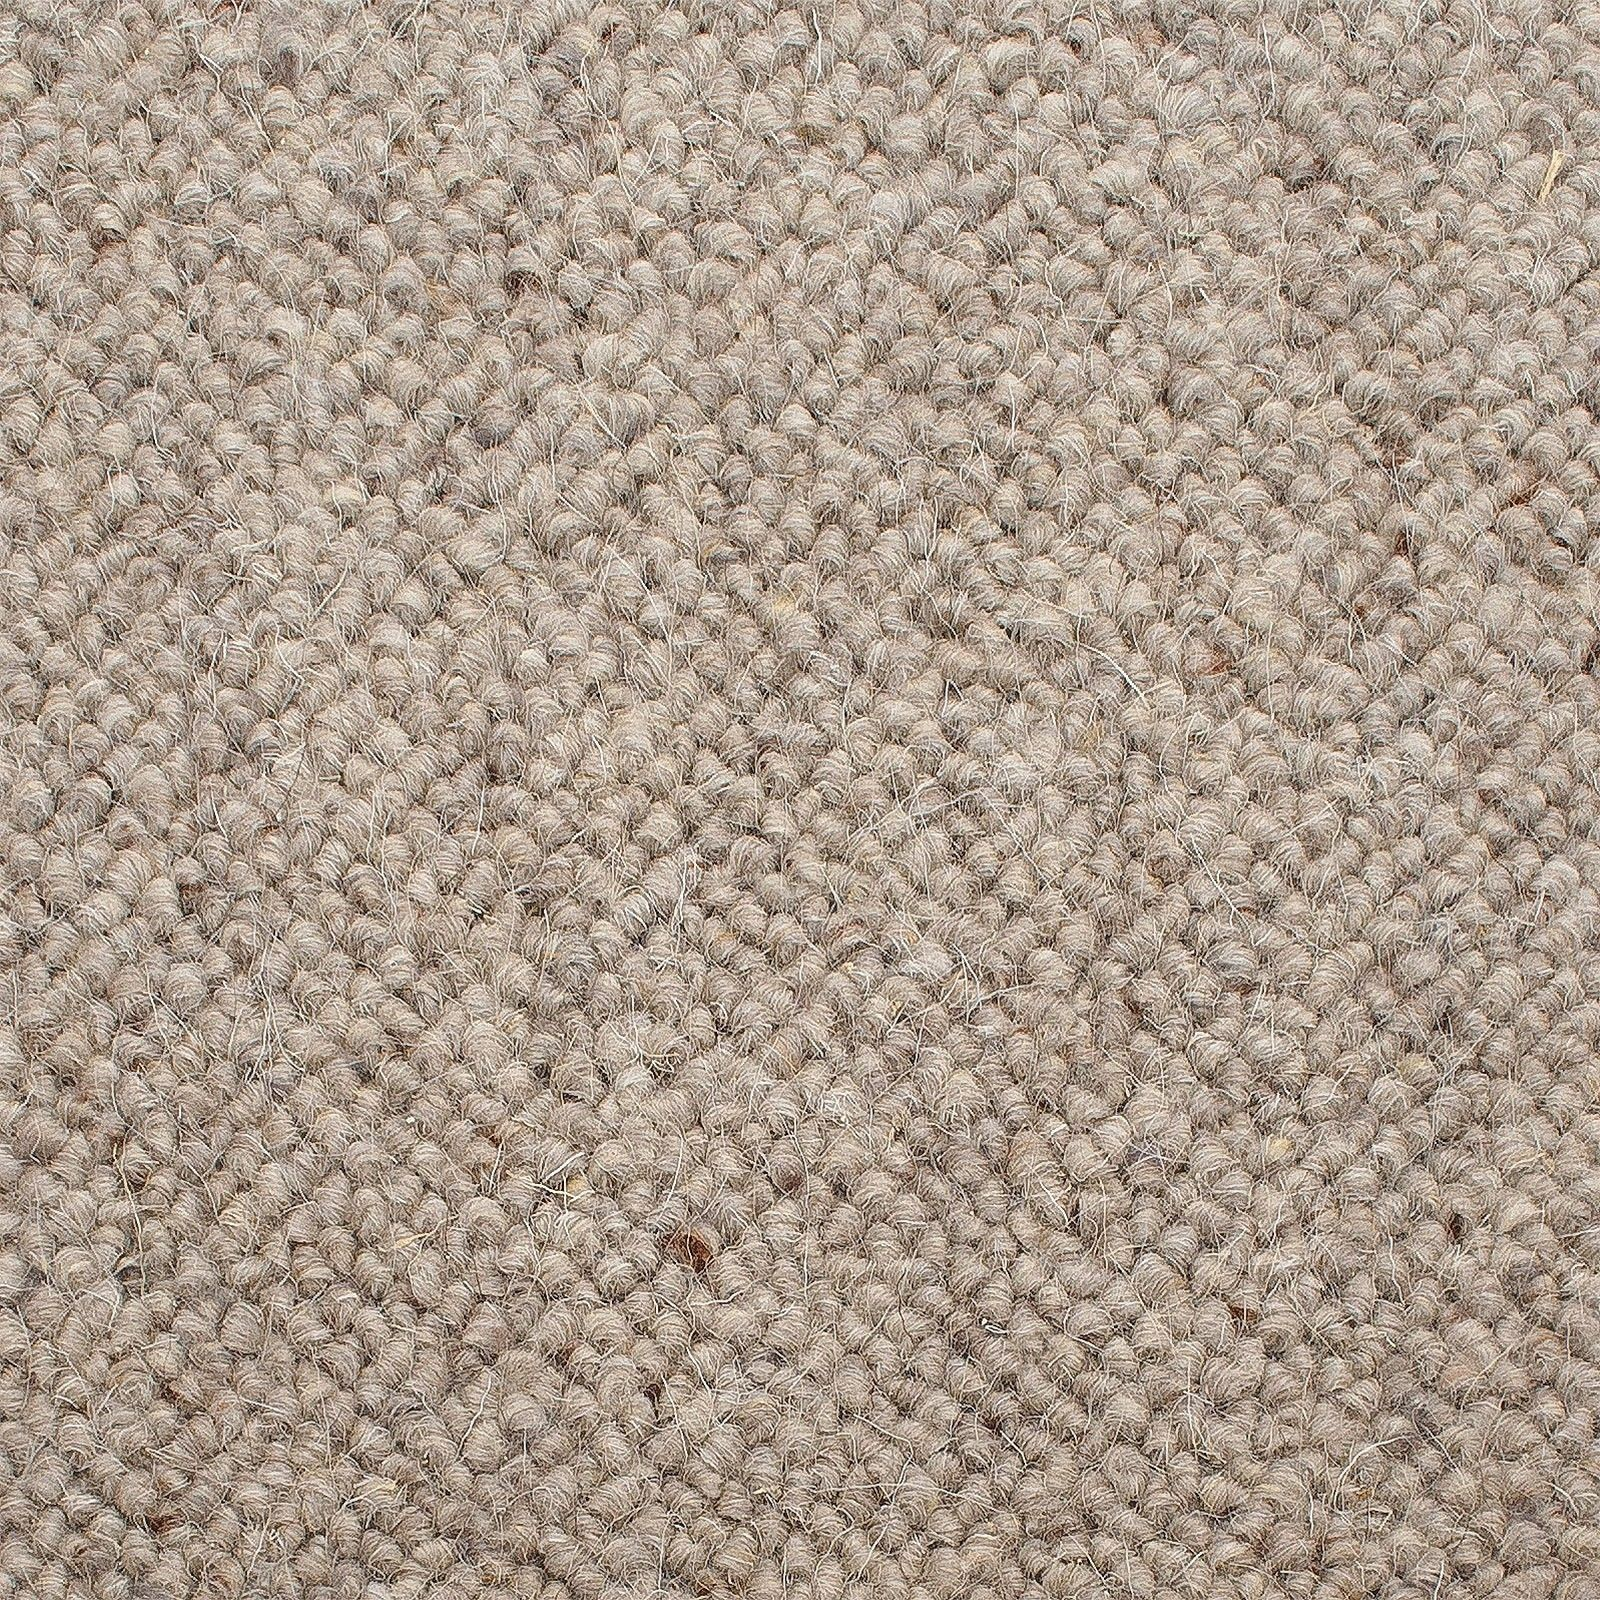 Corsa Berber 920 Ash Grey Wool Carpet Carpet